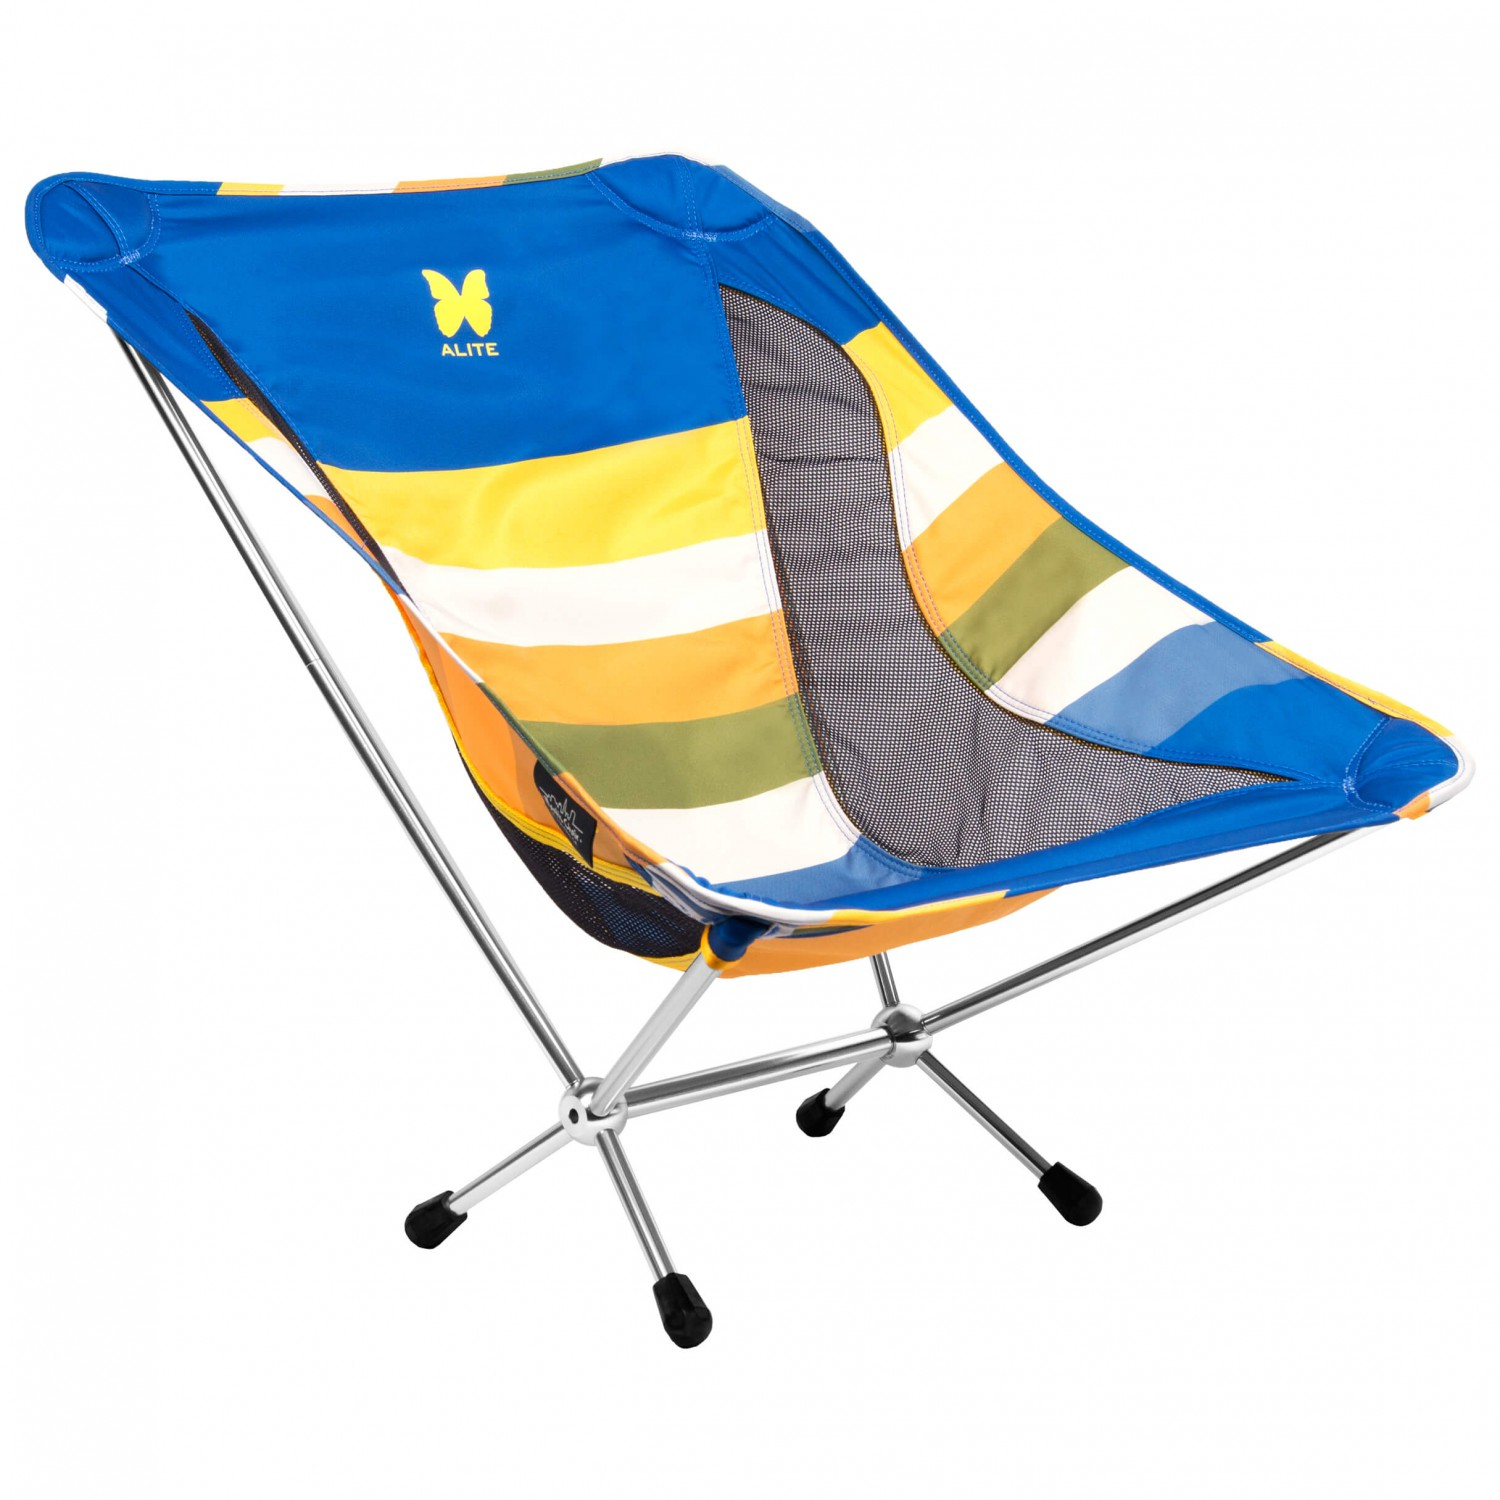 alite mantis chair cover rentals near paterson nj 2 camping free uk delivery